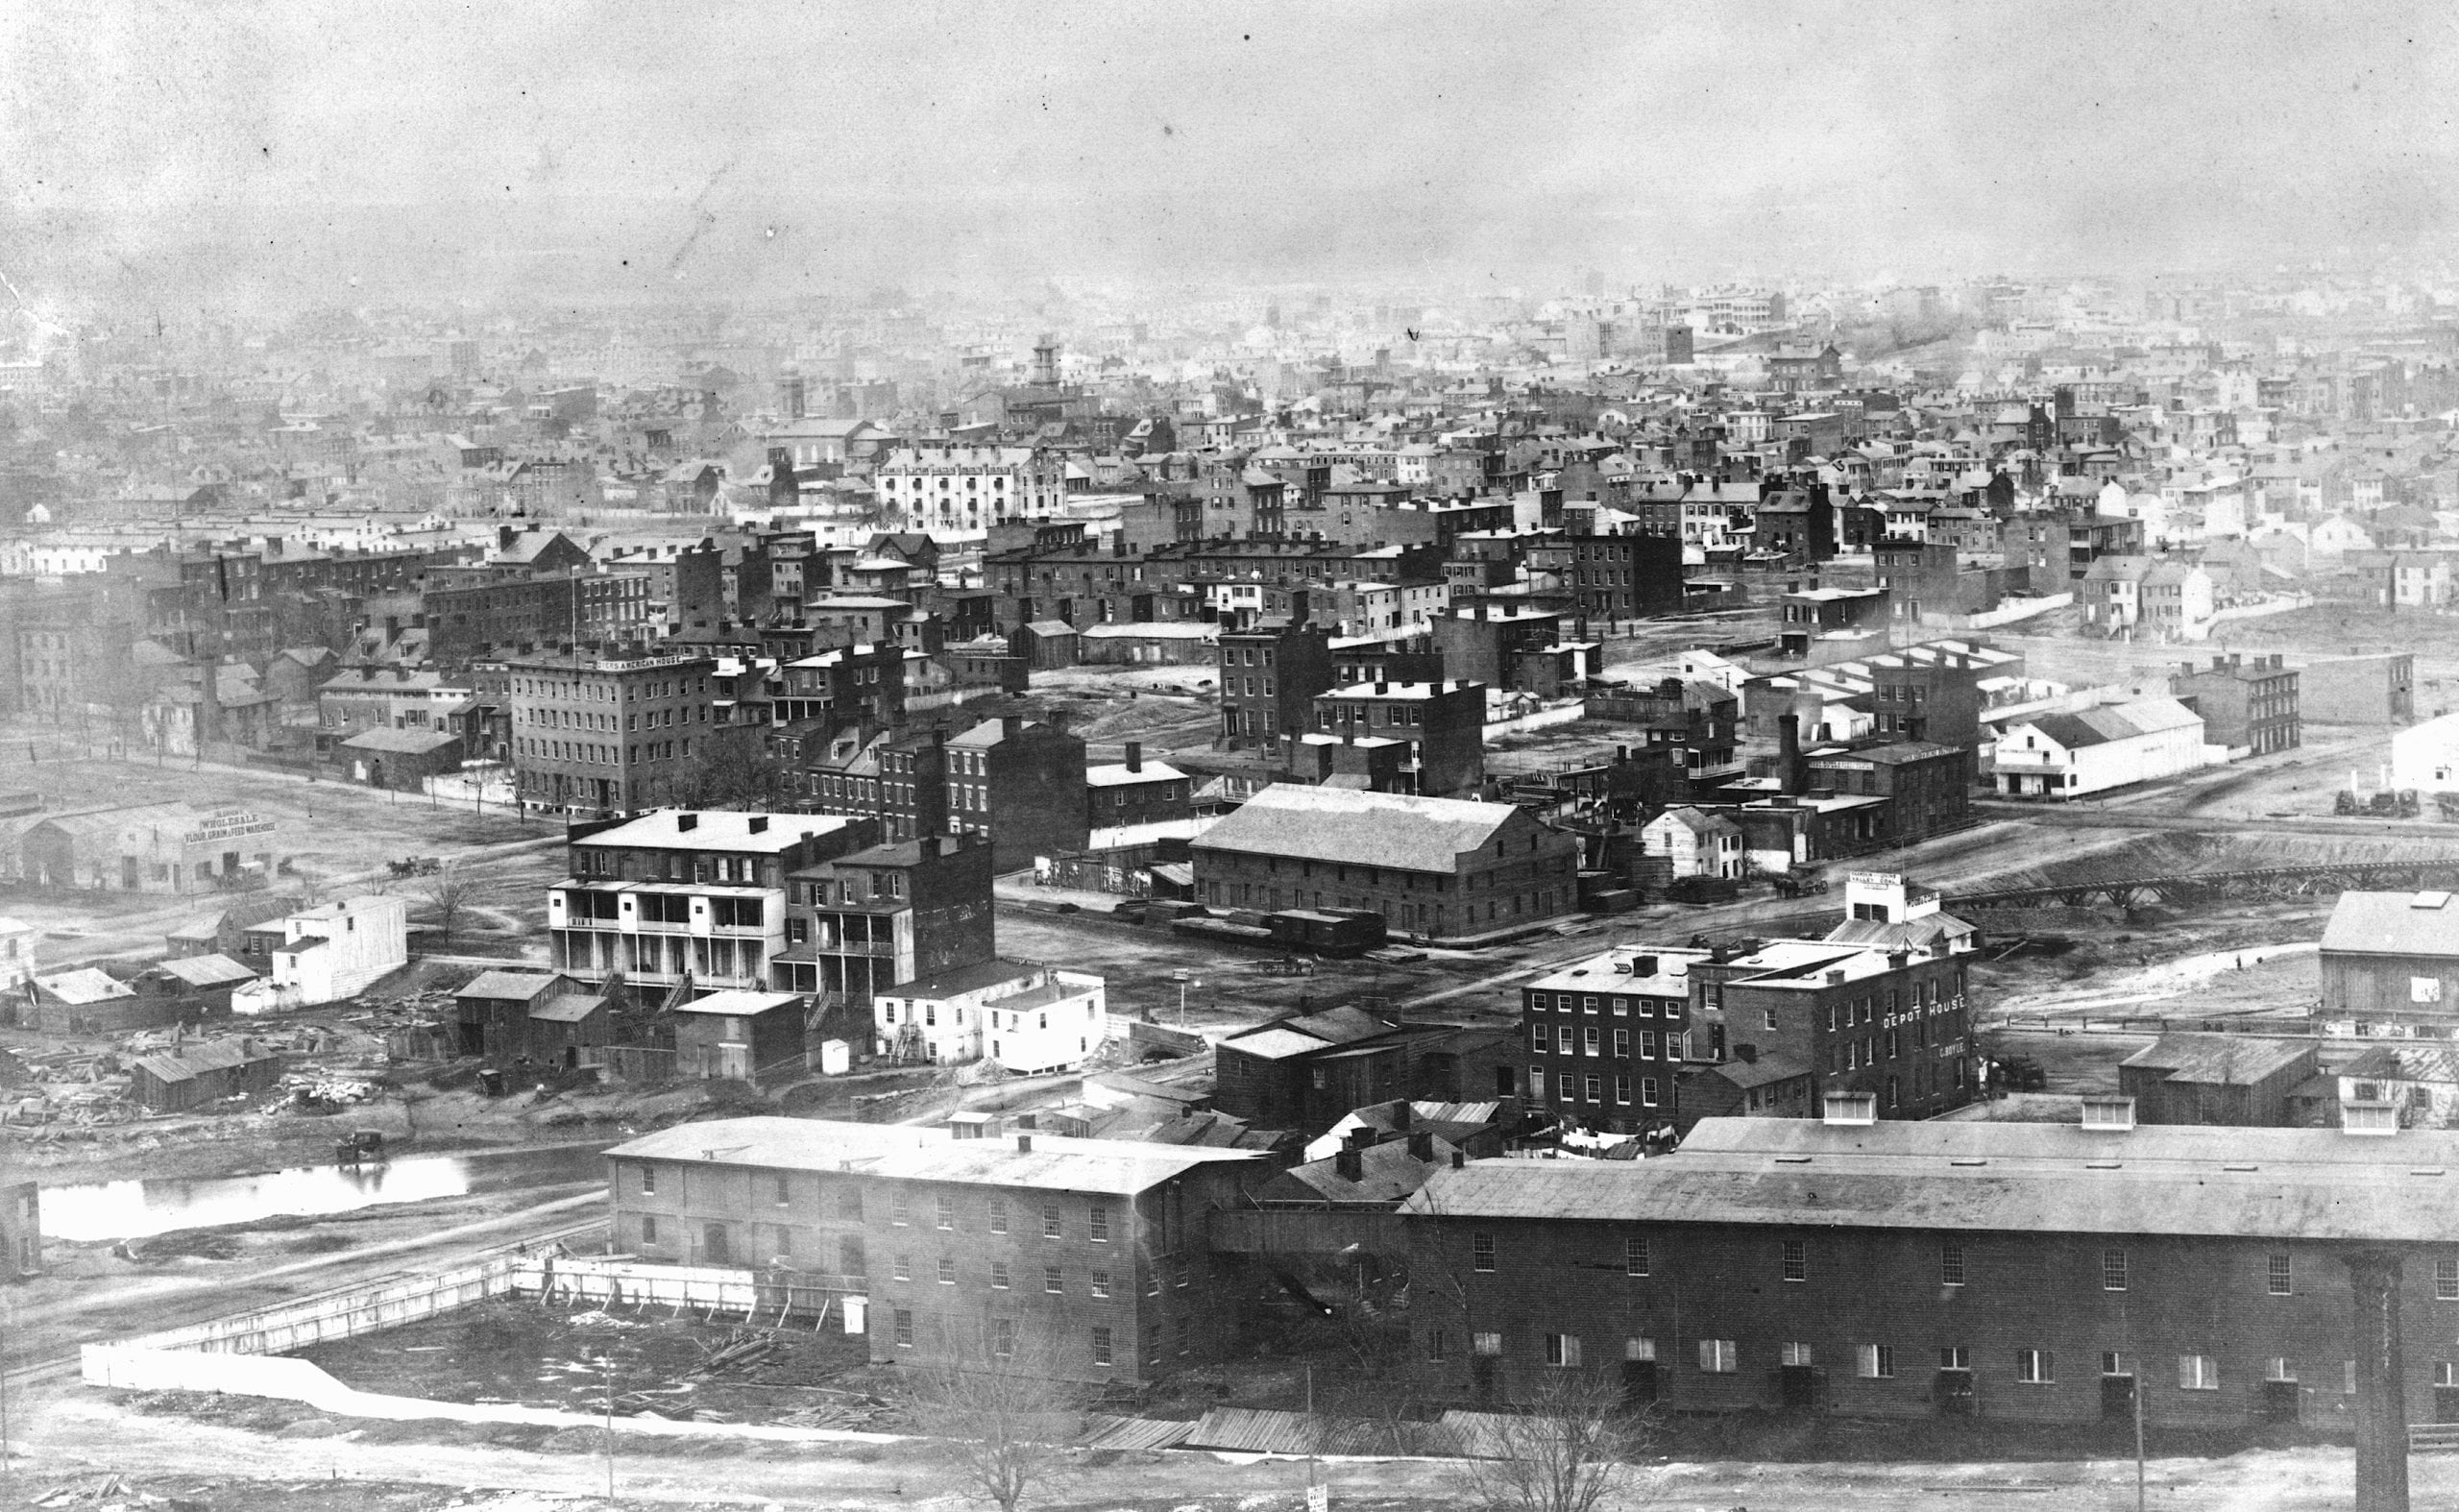 Early photographic view of Washington, D.C. from Capitol Hill, looking northwest - Northwest view with 1st, B, C, D streets, and Indiana Ave. in the foreground; view includes the Washington Jail, Aldrich's Wholesale Flour, Grain & Feed Warehouse, Dyers American House, Shamokin & Lykins Valley Coal (Wood & Coal), Depot House, C. Boyle, and Door, Sash & Blind Factory